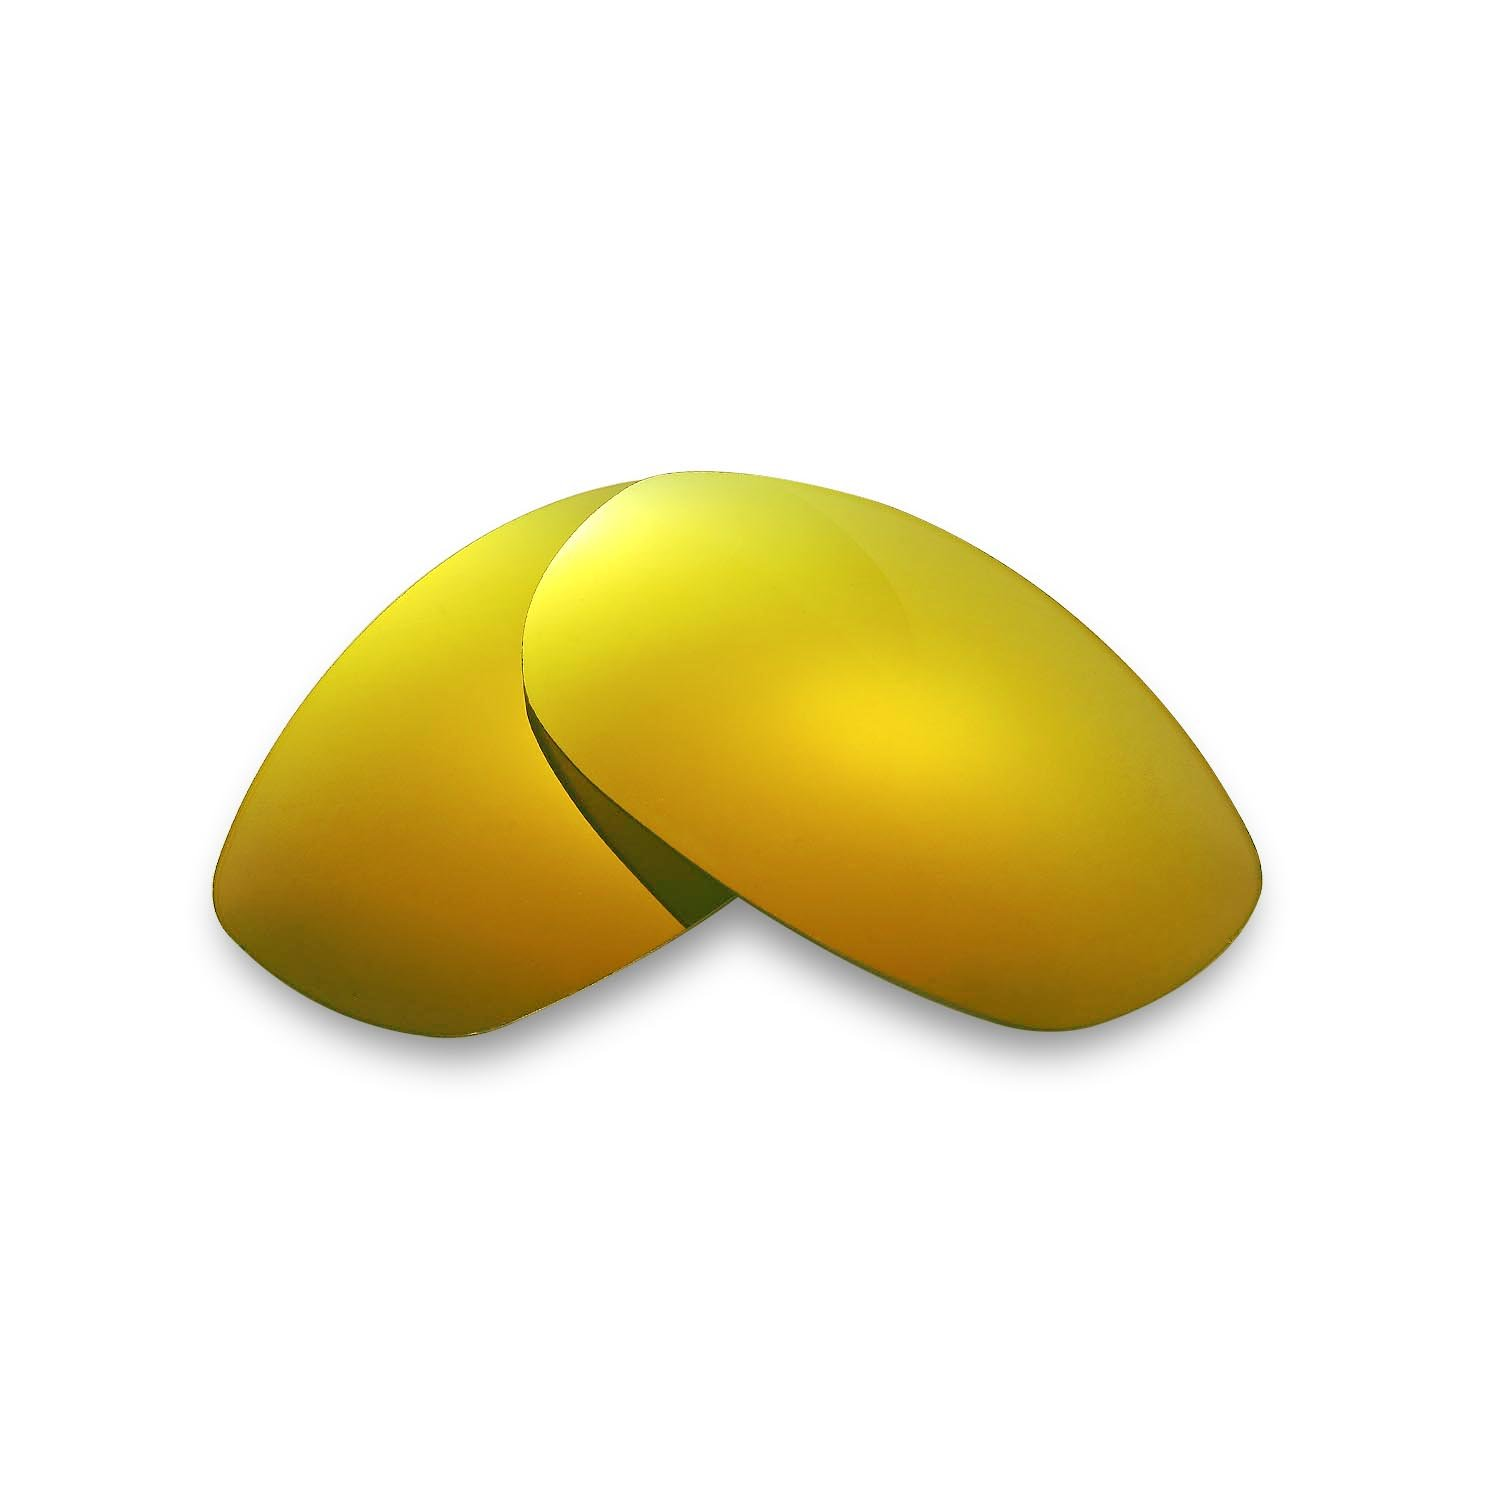 cfba4c9d3ee4a Amazon.com  Walleva Replacement Lenses for Oakley Tightrope Sunglasses-9  Options Available (24K Gold - Polarized)  Sports   Outdoors